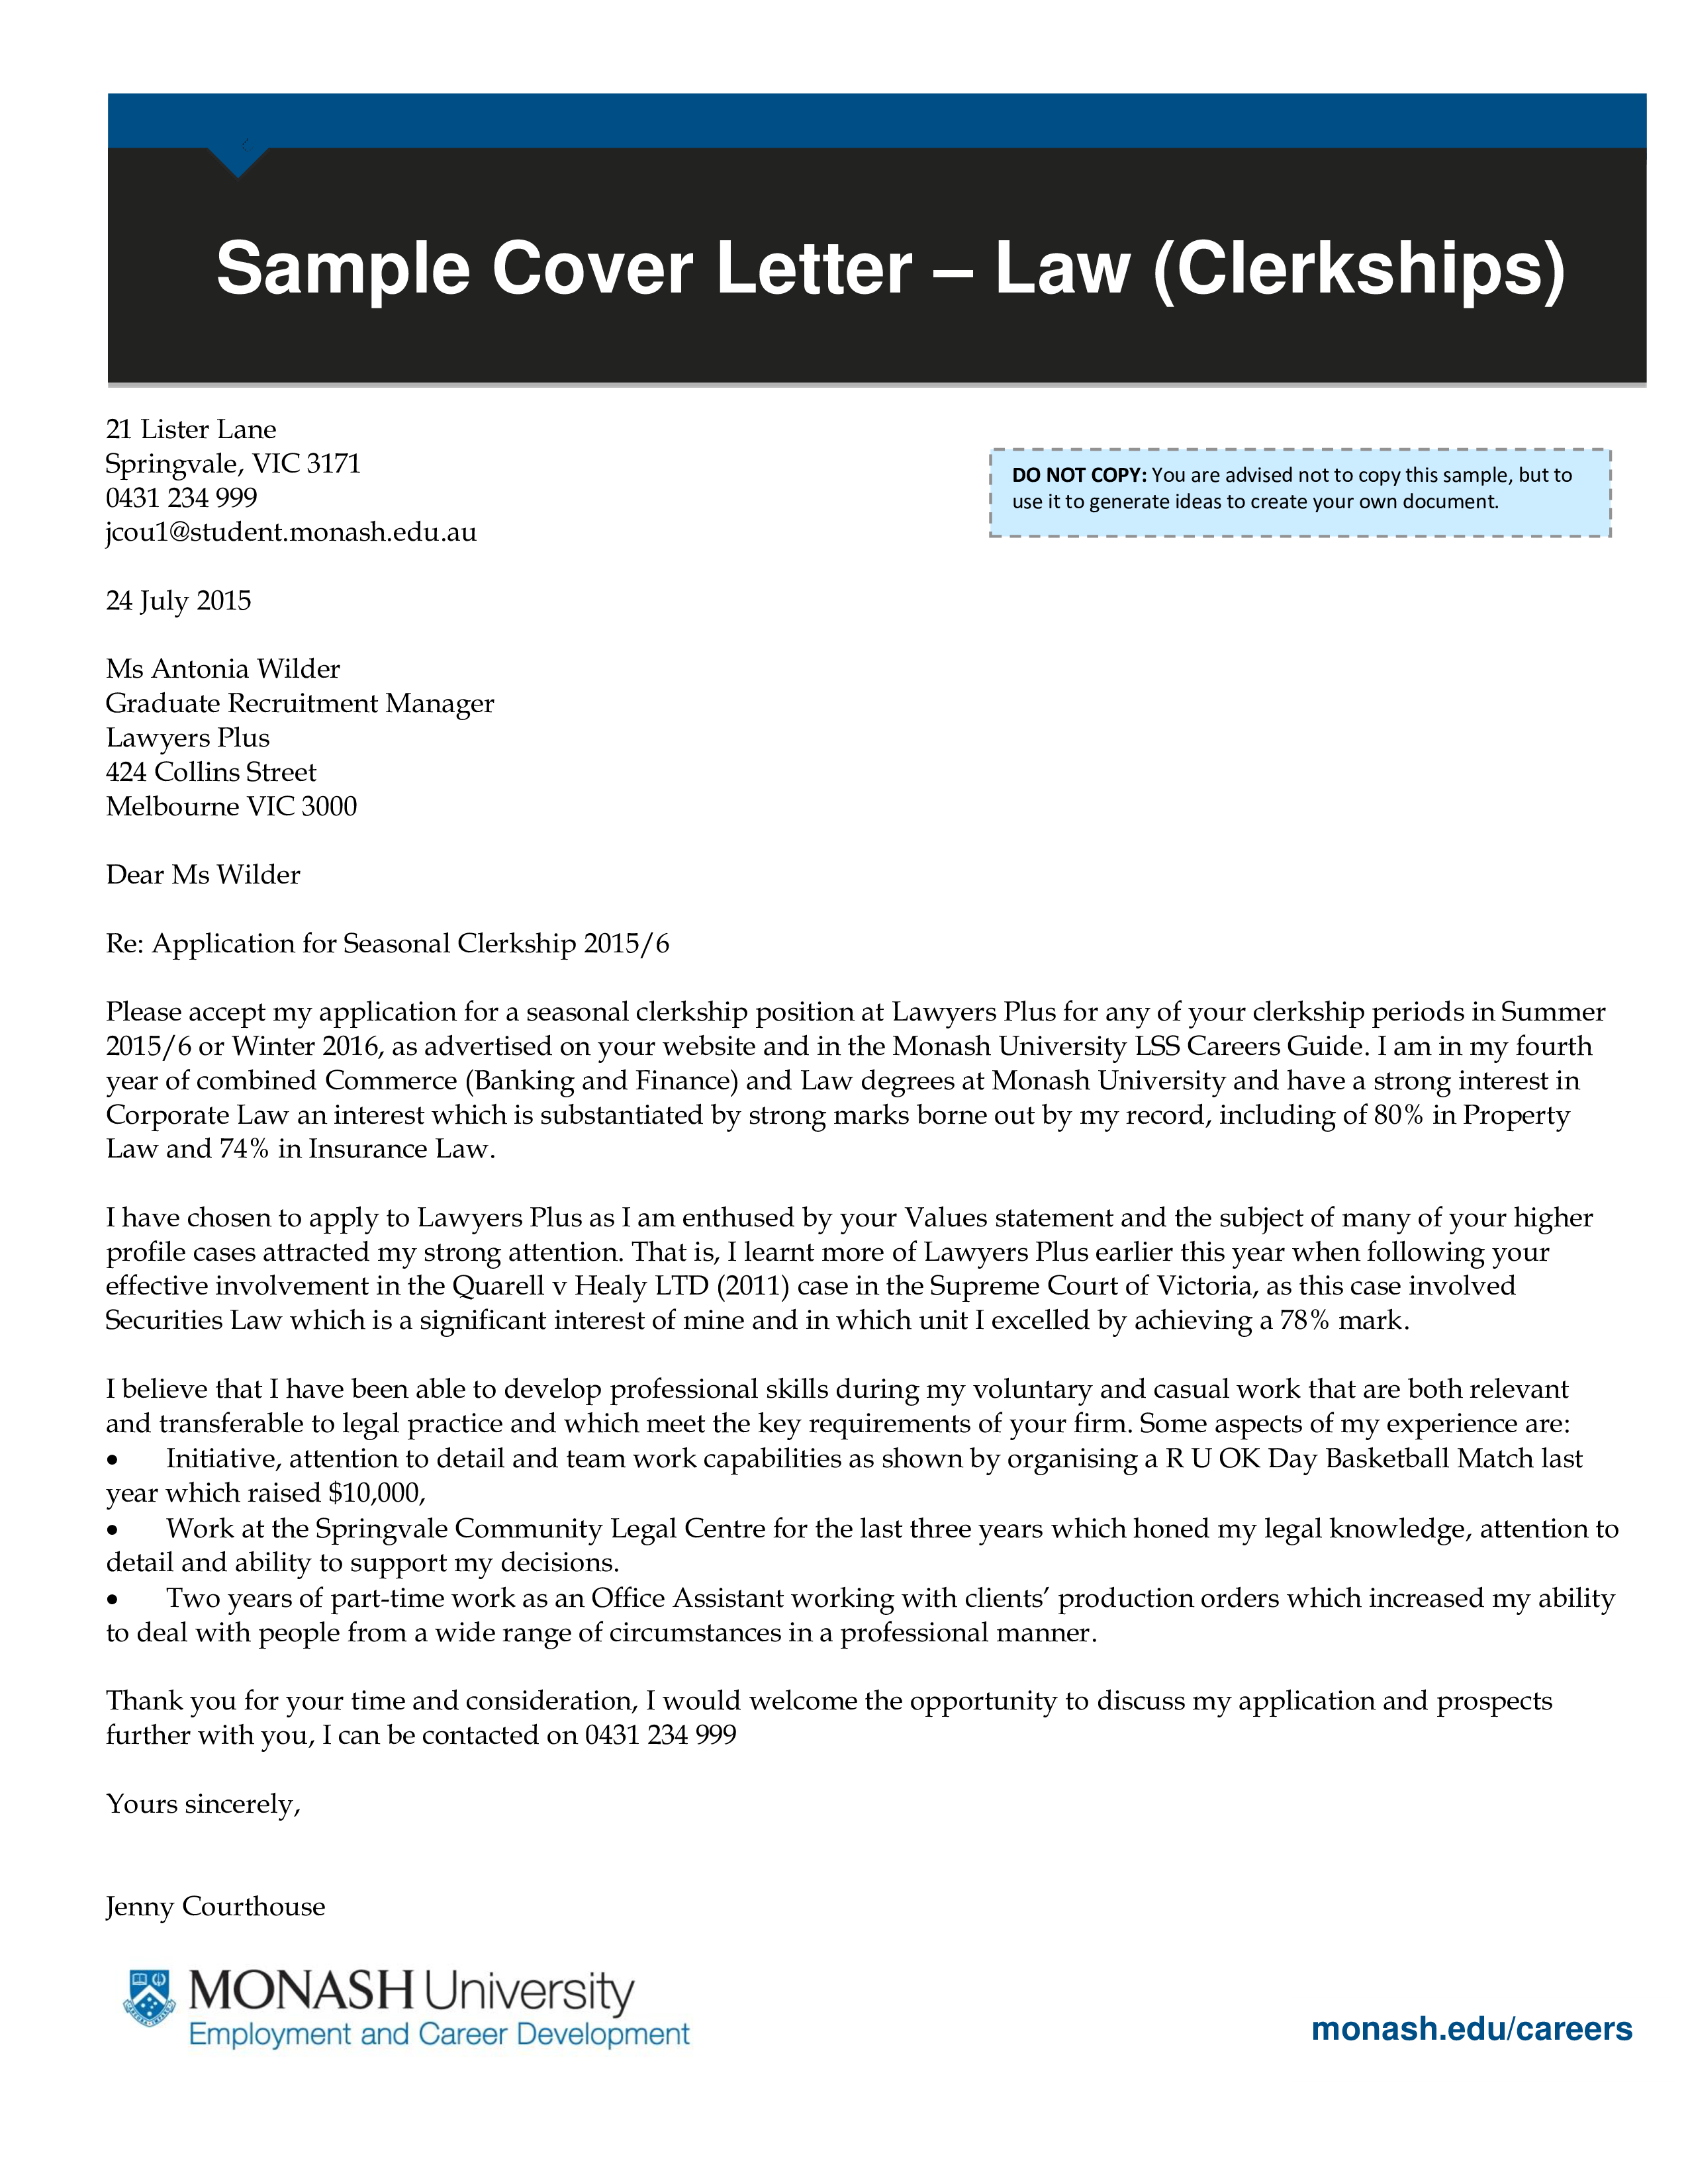 Law Student Application Cover Letter | Templates at ...